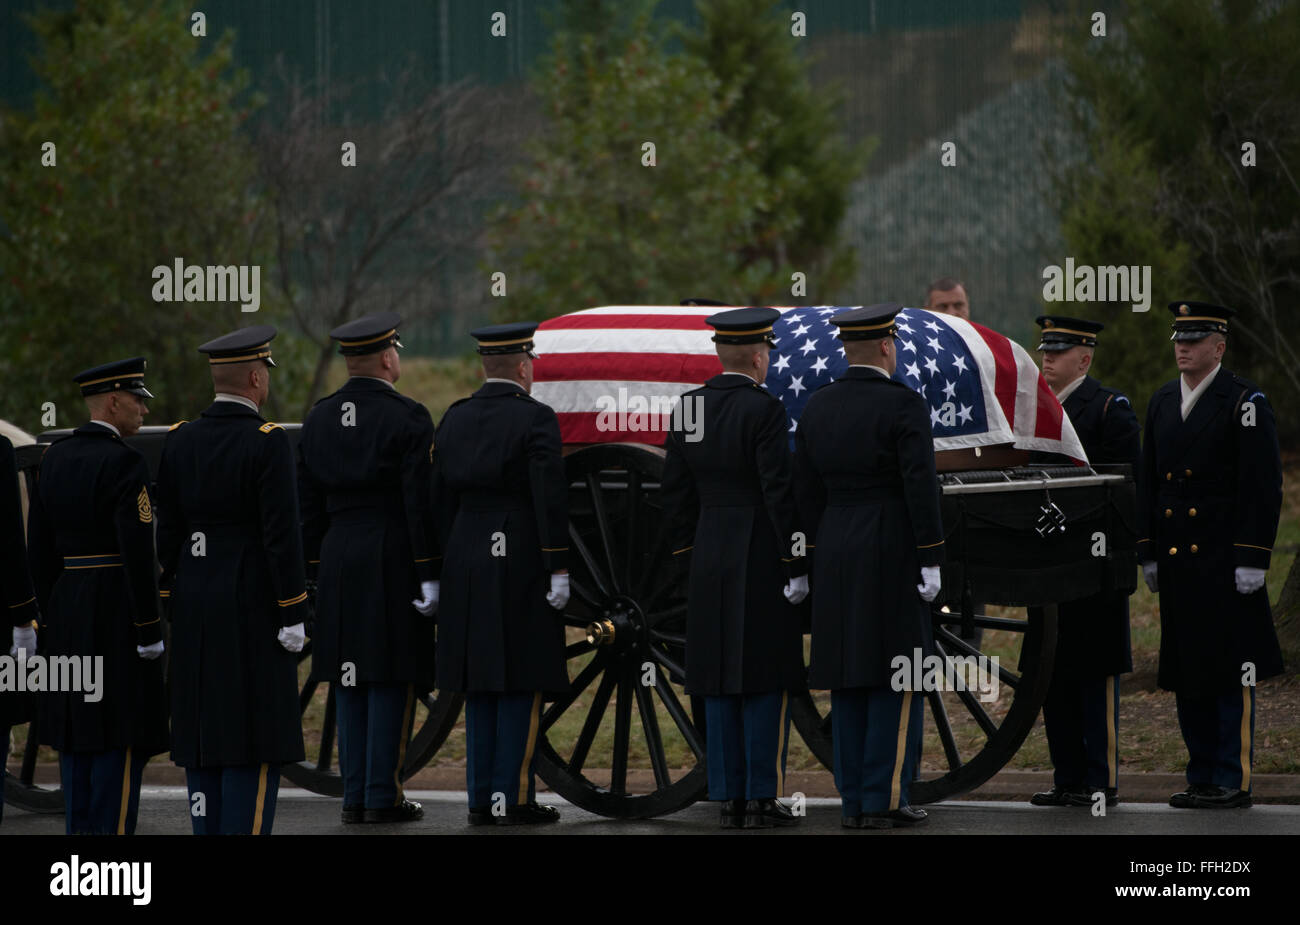 Members of the Army's 3rd Infantry Regiment's Caisson Platoon align to carry the remains of Army Air Forces - Stock Image